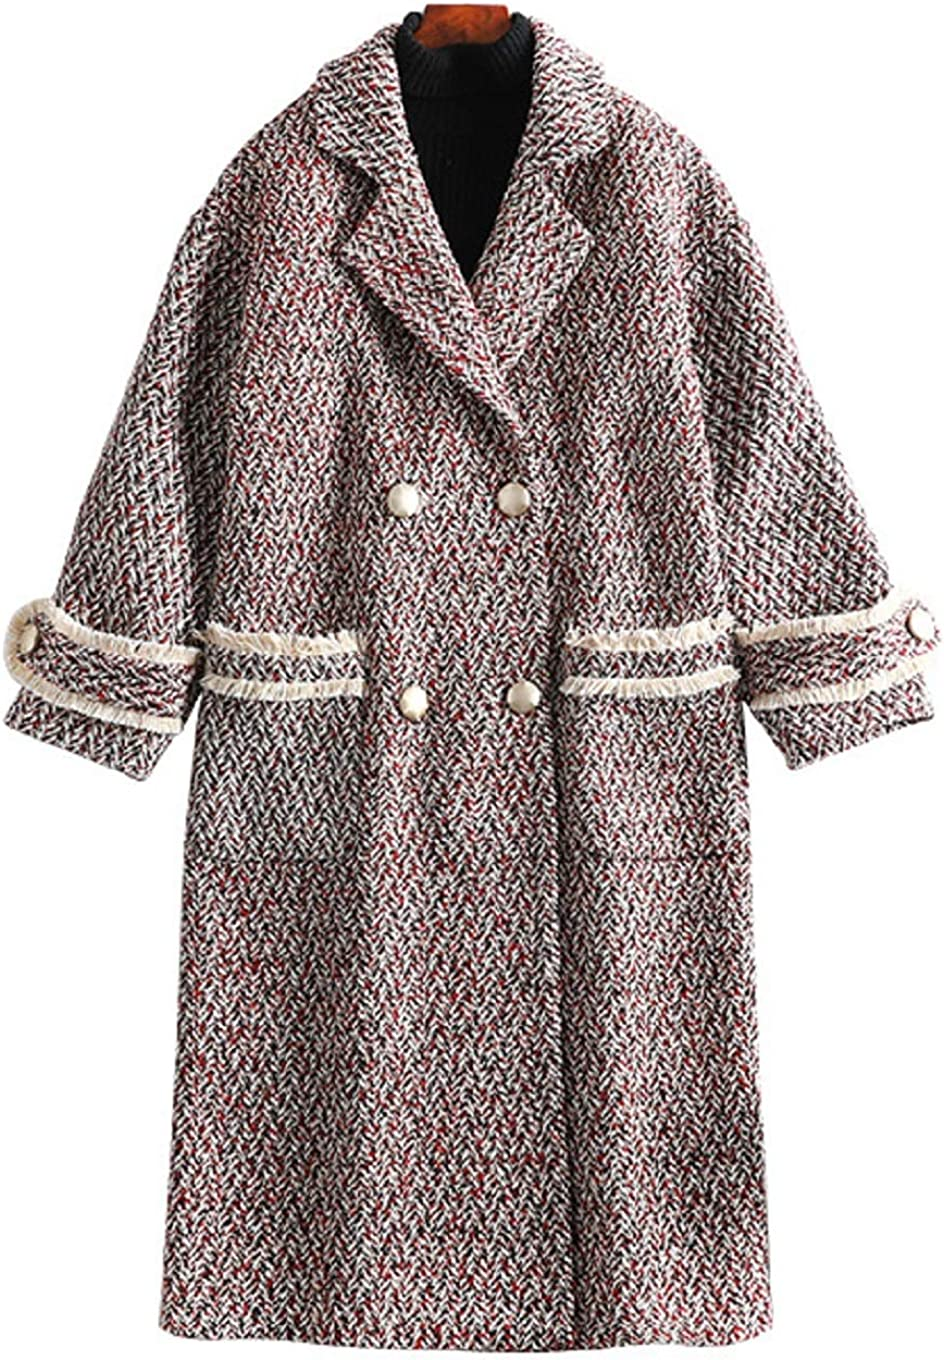 CHARTOU Women's Loose Notched Collar Double Breast Plaid Wool Blend Midi Long Pea Coat